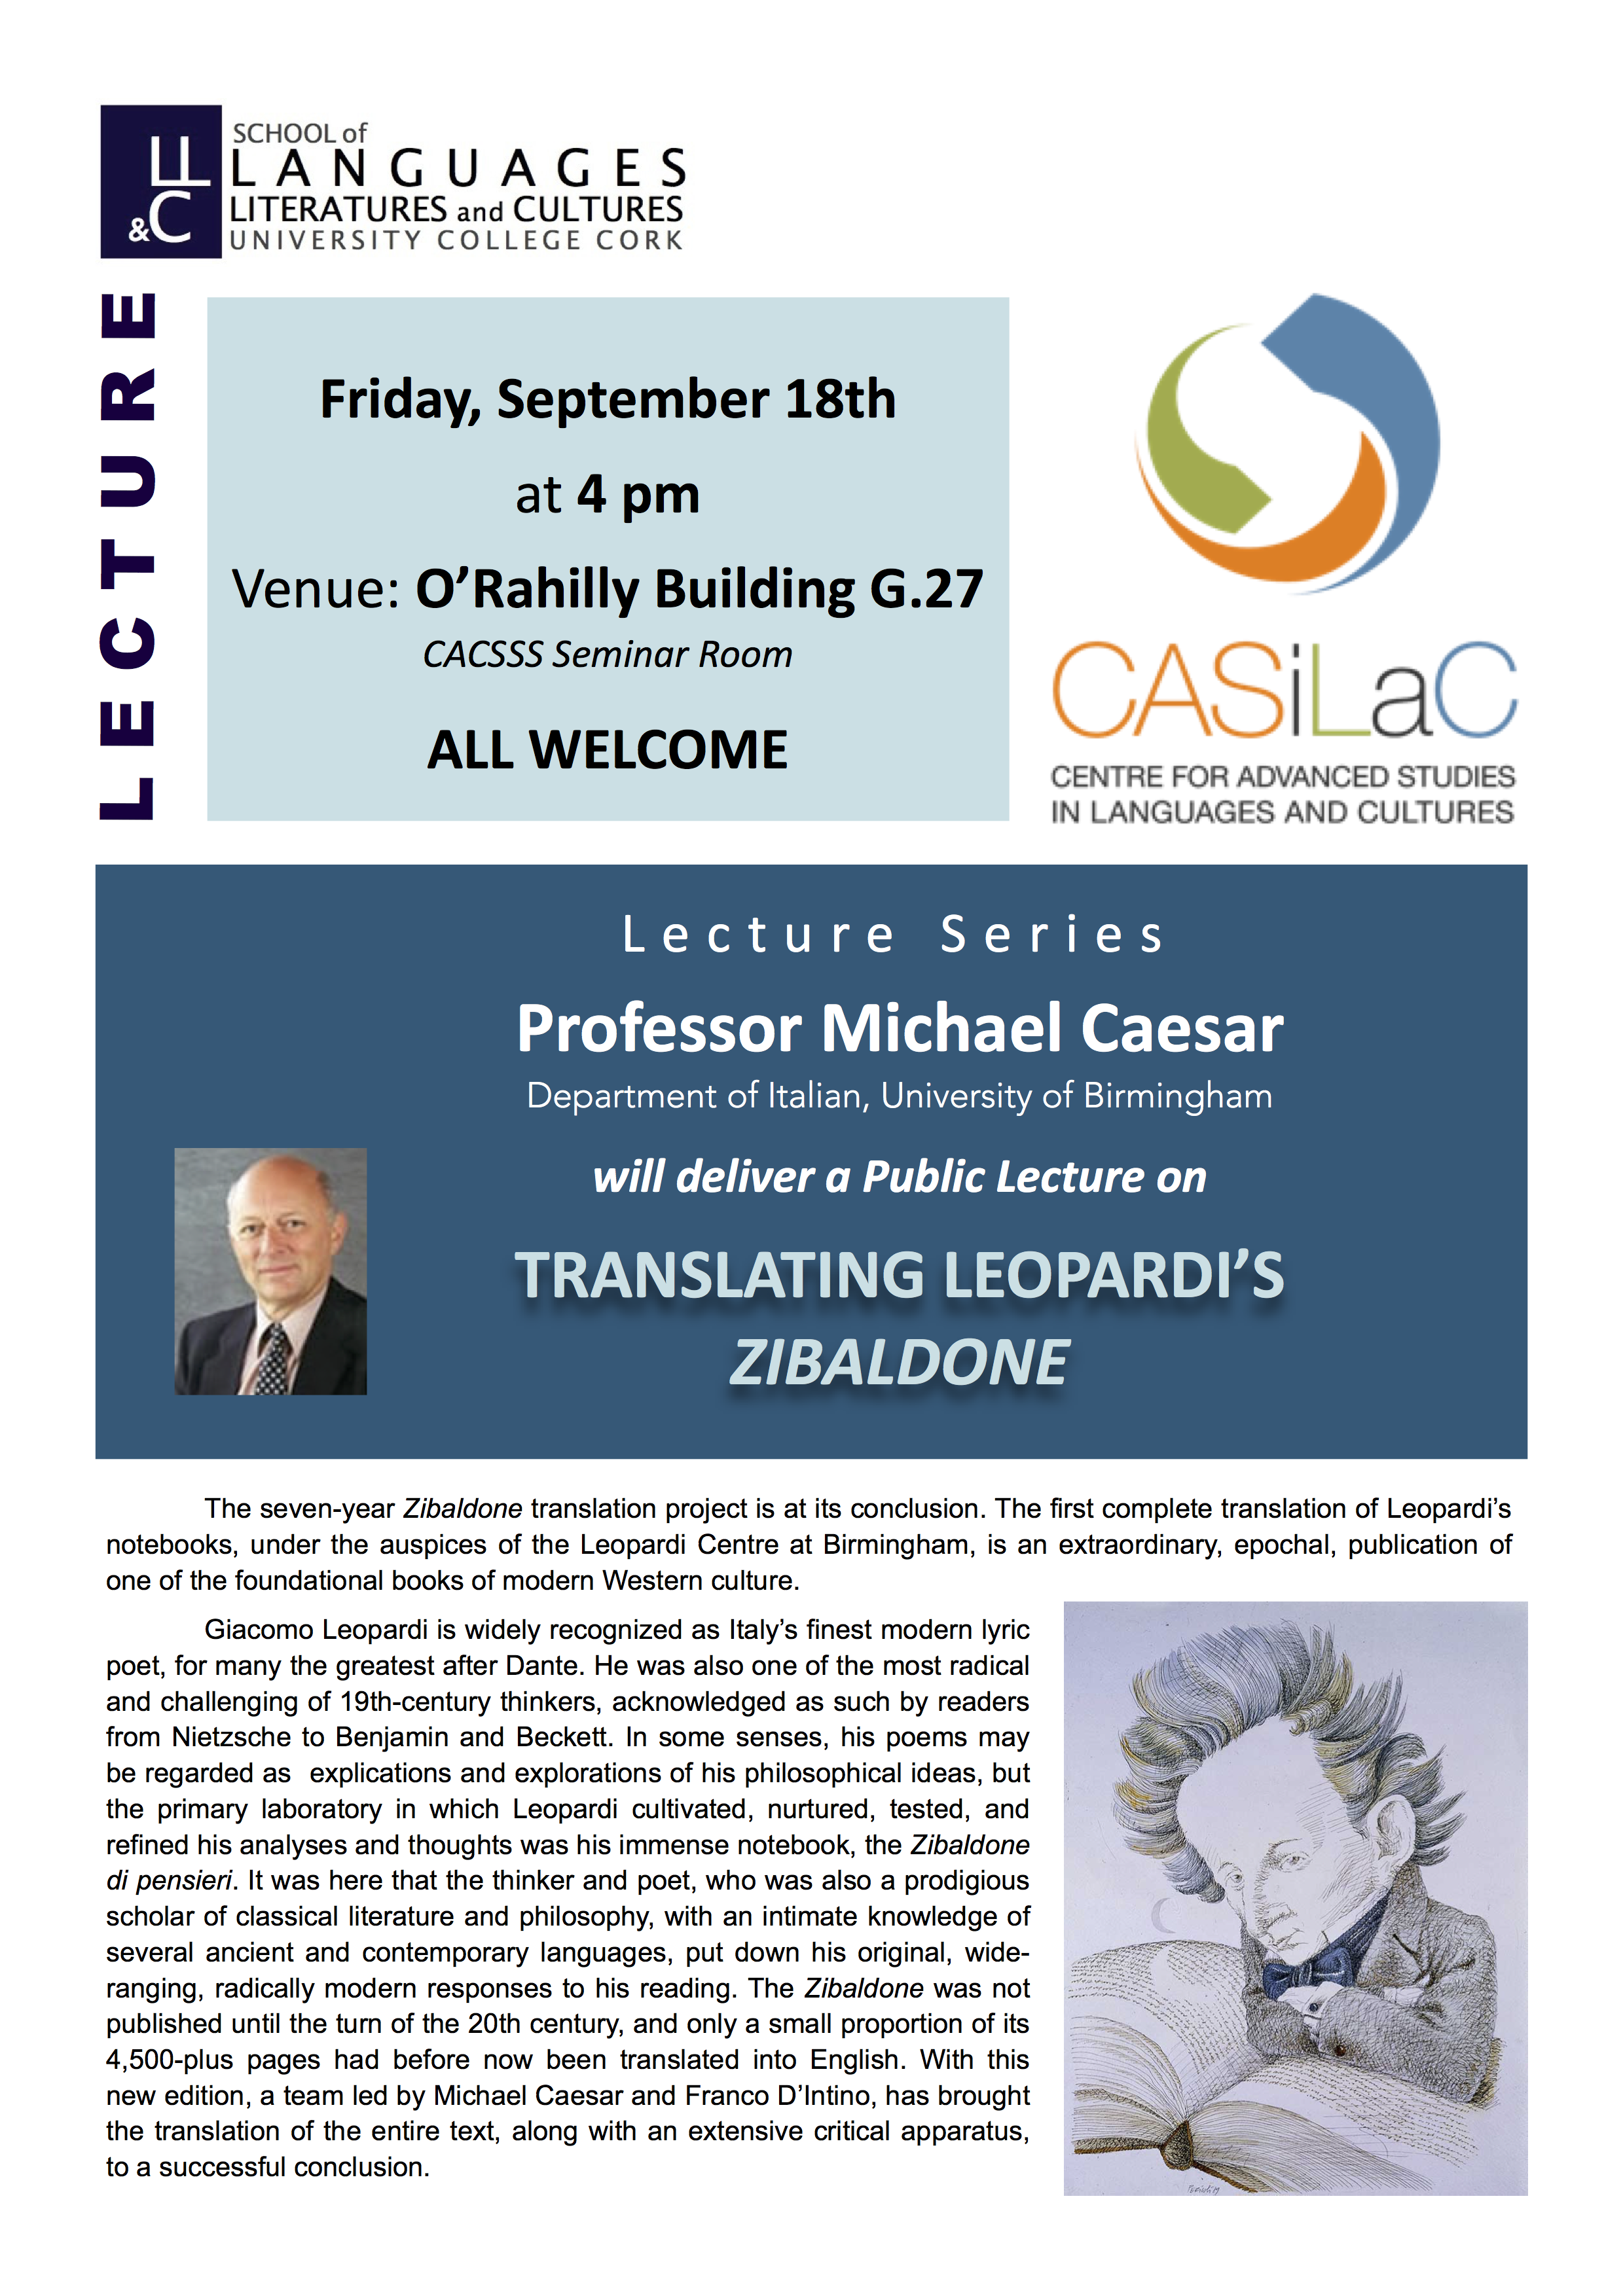 Professor Michael Caesar will deliver a Public Lecture - Translating Leopardi's Zibaldone